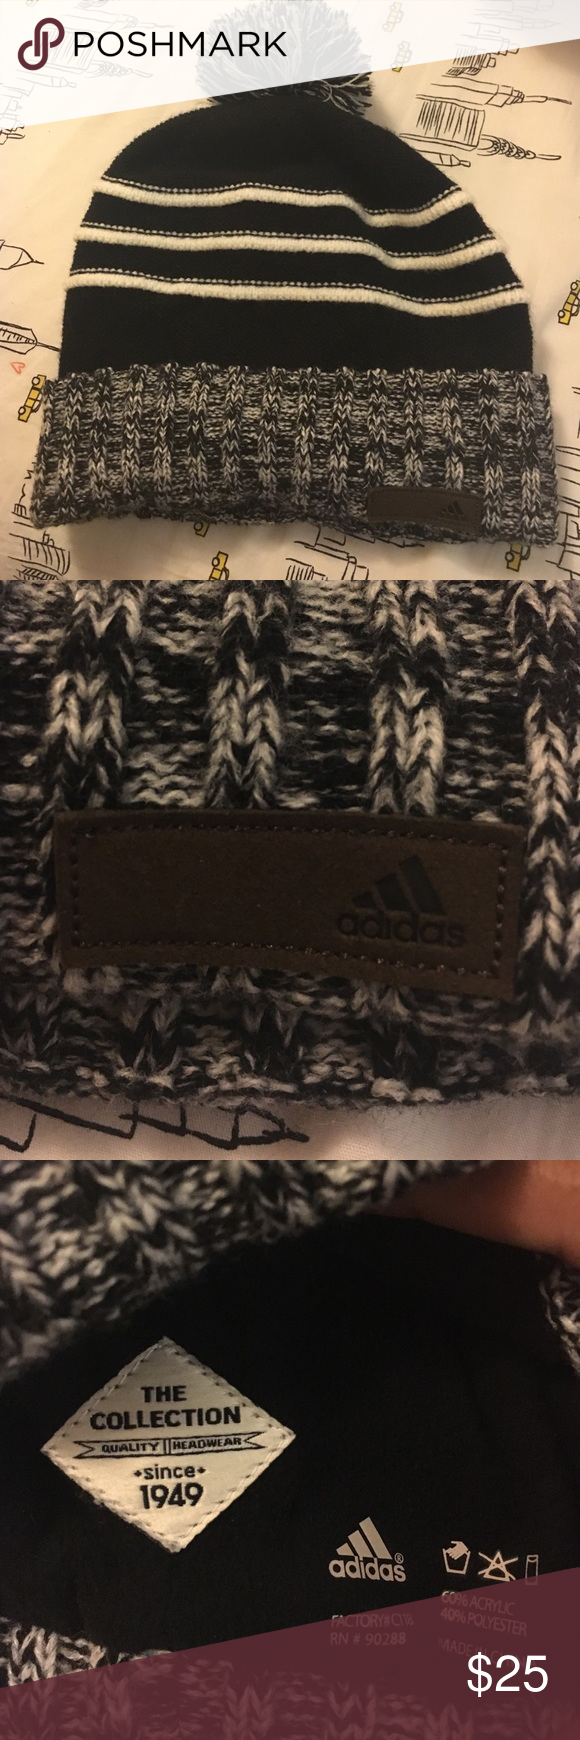 NWOT Adidas hat NWOT adidas Pom Pom hat, got for a gift. Adidas Accessories